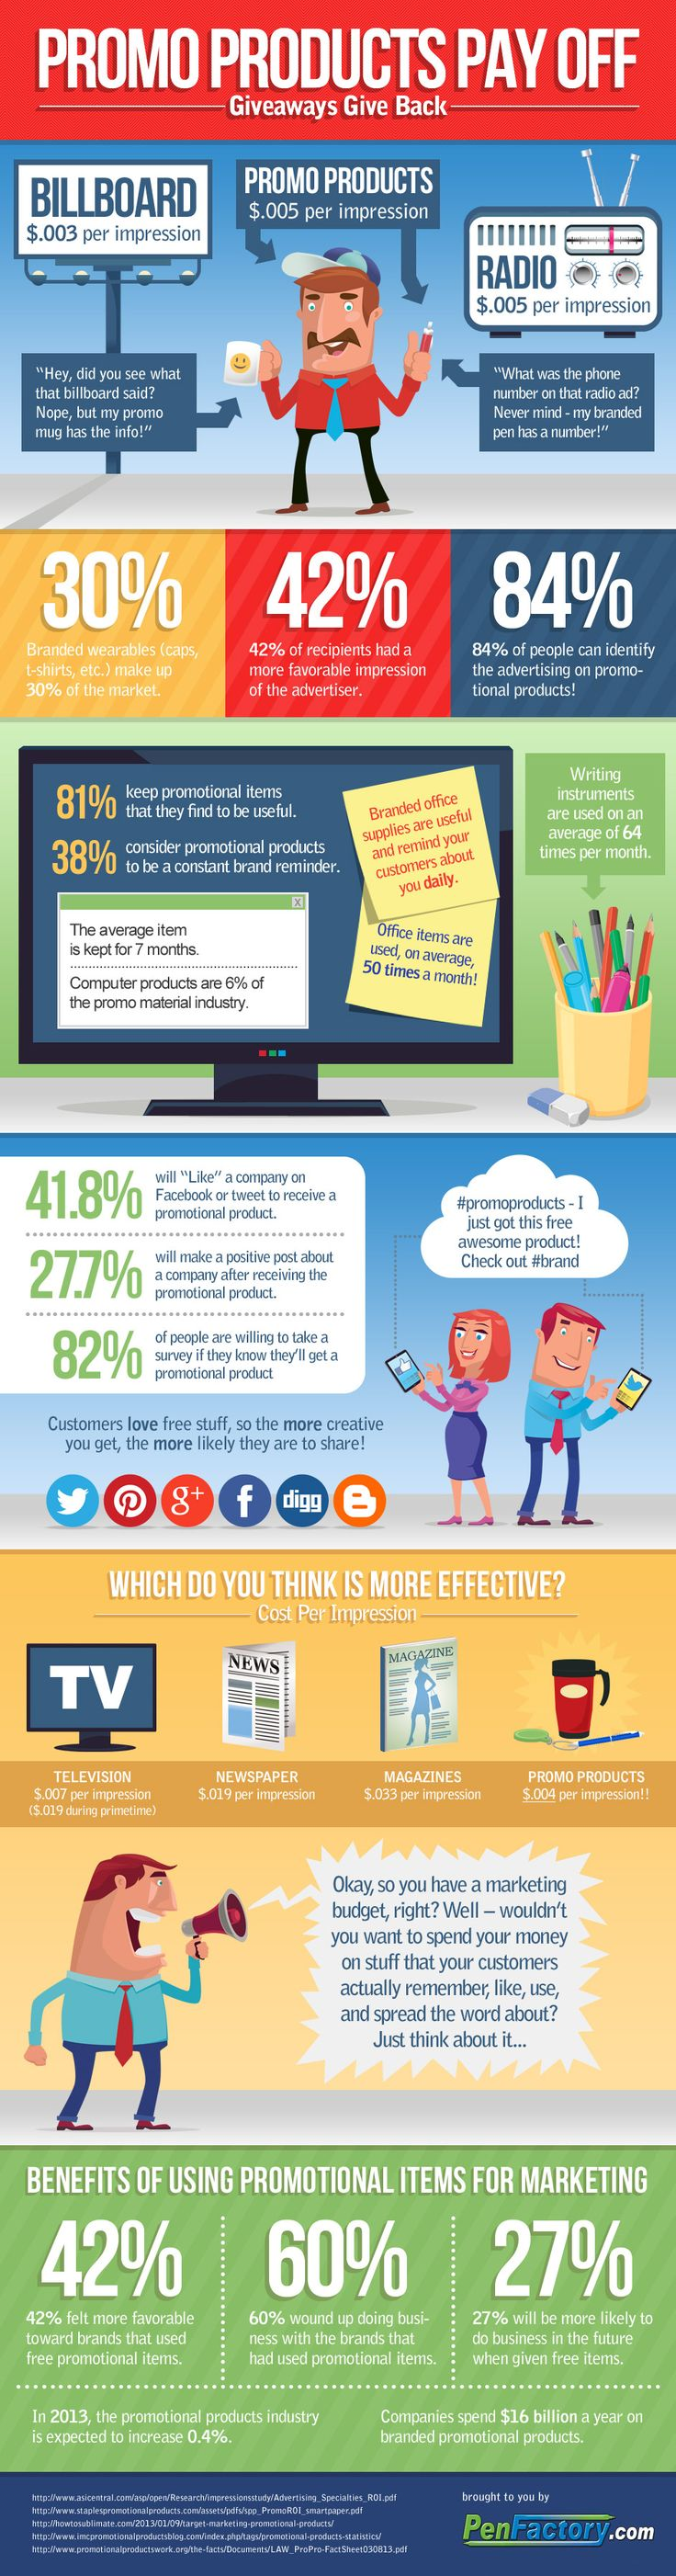 Check out this helpful infographic abotu how promotional pens, reusable travel mugs, promotional keychains and so many more items can help get the word out about your business!